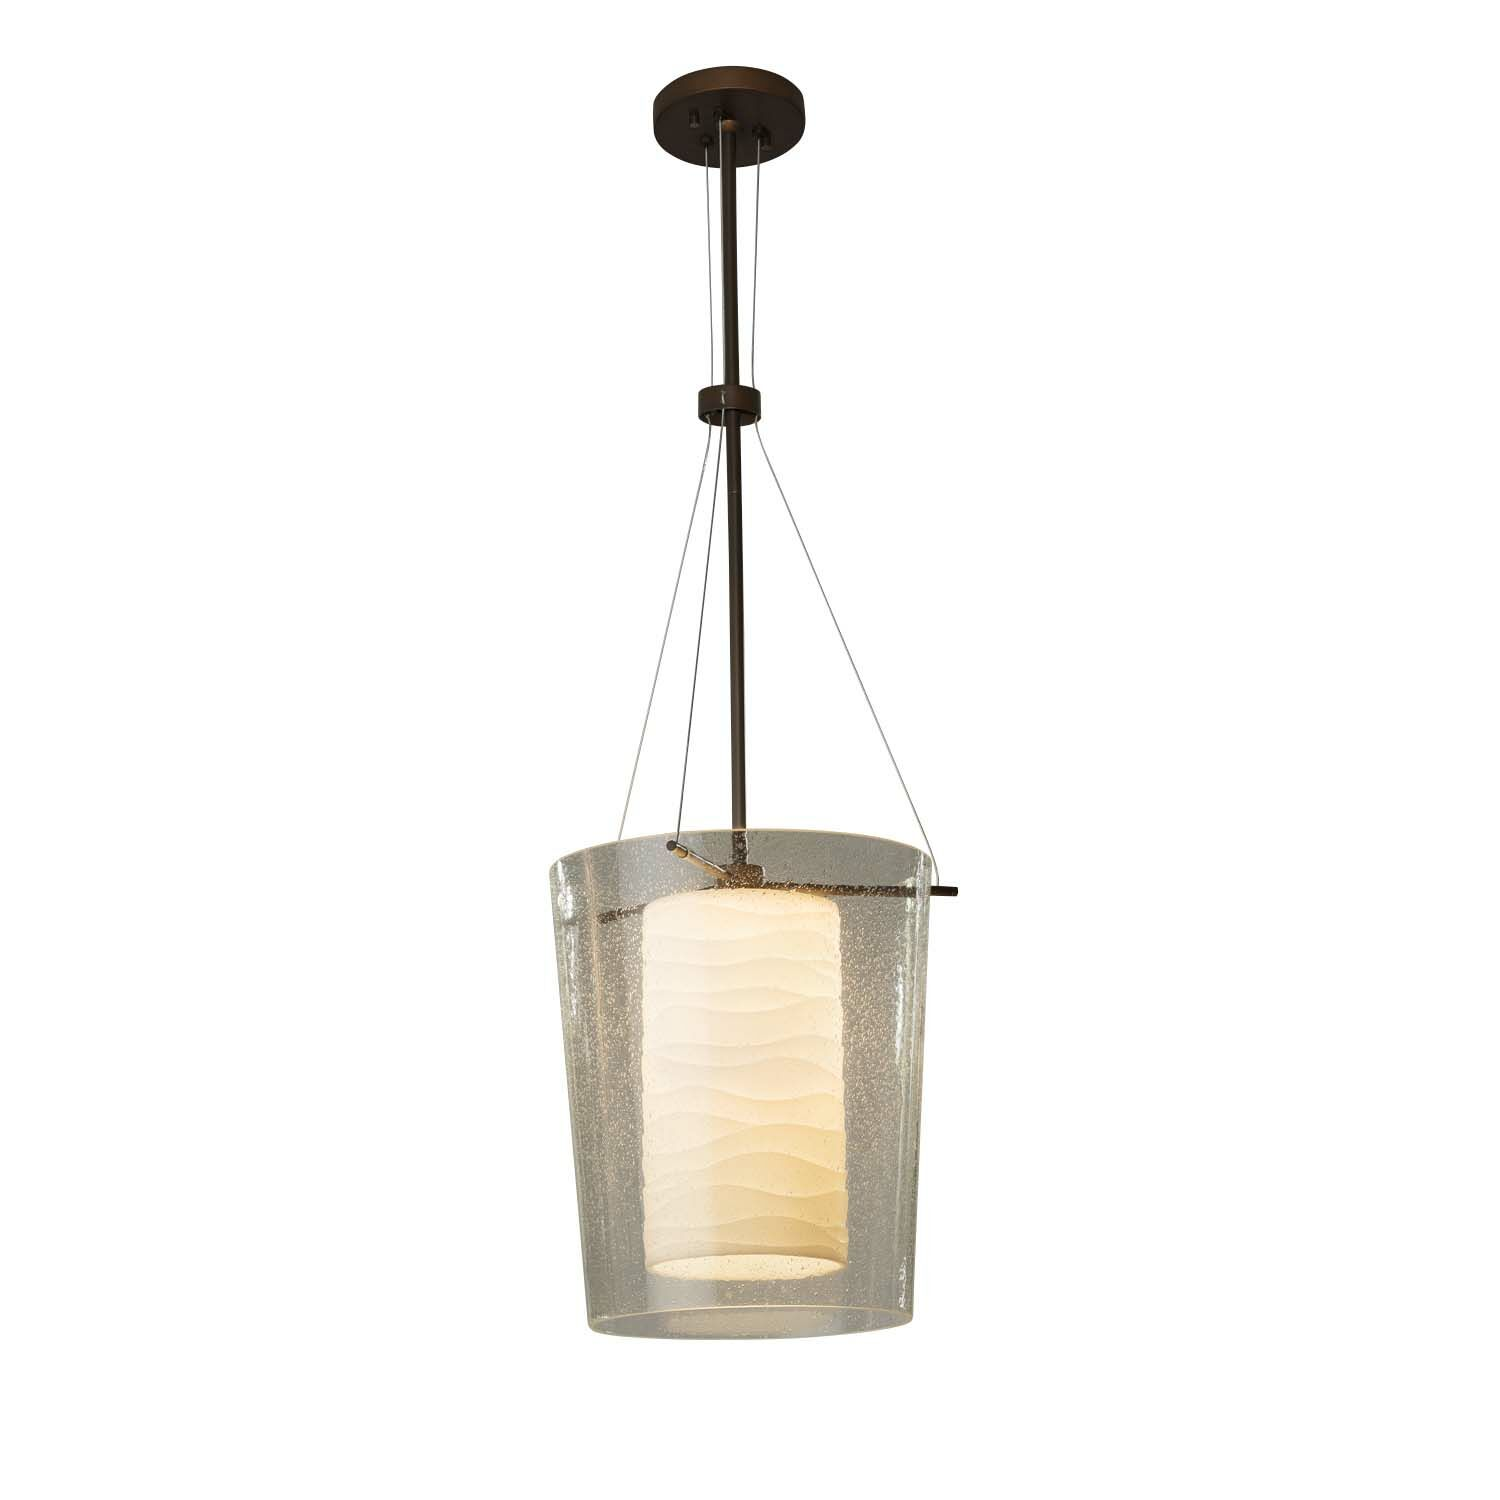 Conovan 1-Light Drum Pendant Finish: Brushed Nickel, Bulb Type: Incandescent